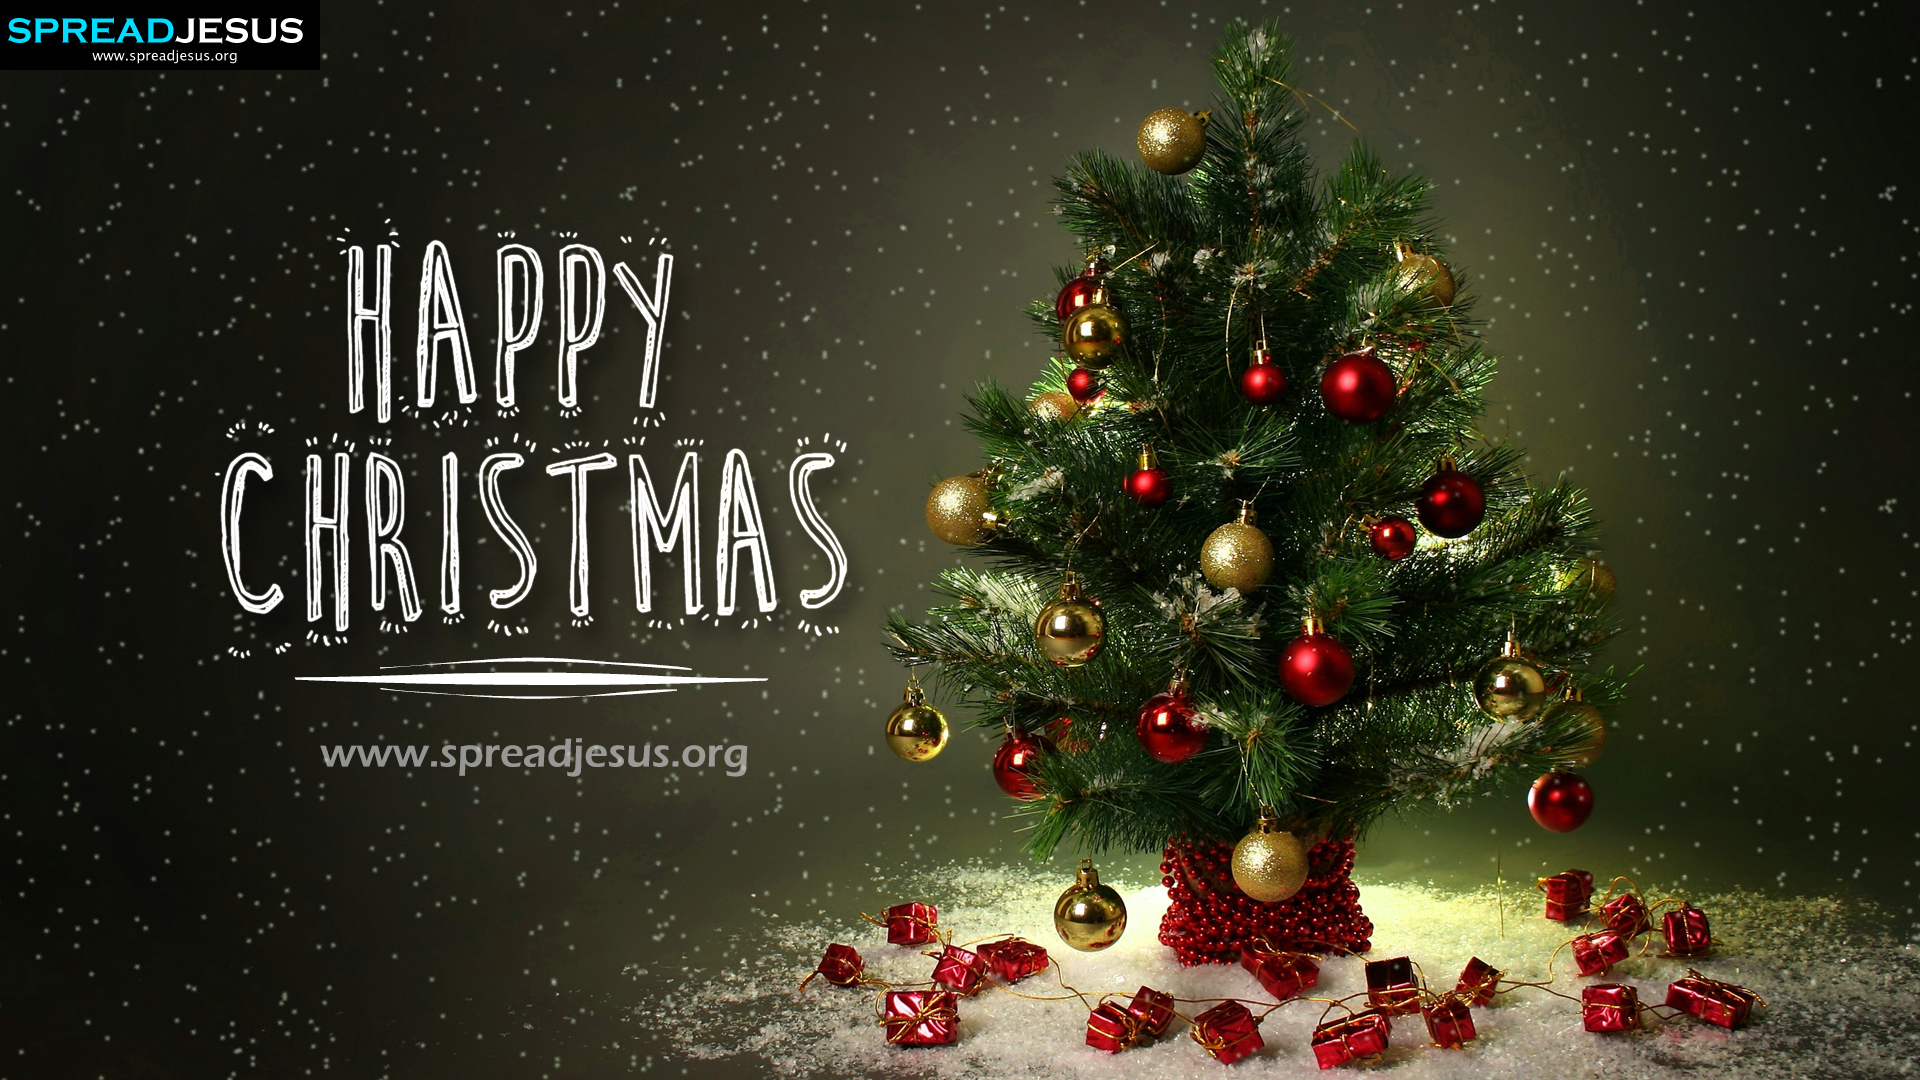 Merry Christmas HD-Wallpapers Download, Happy Christmas